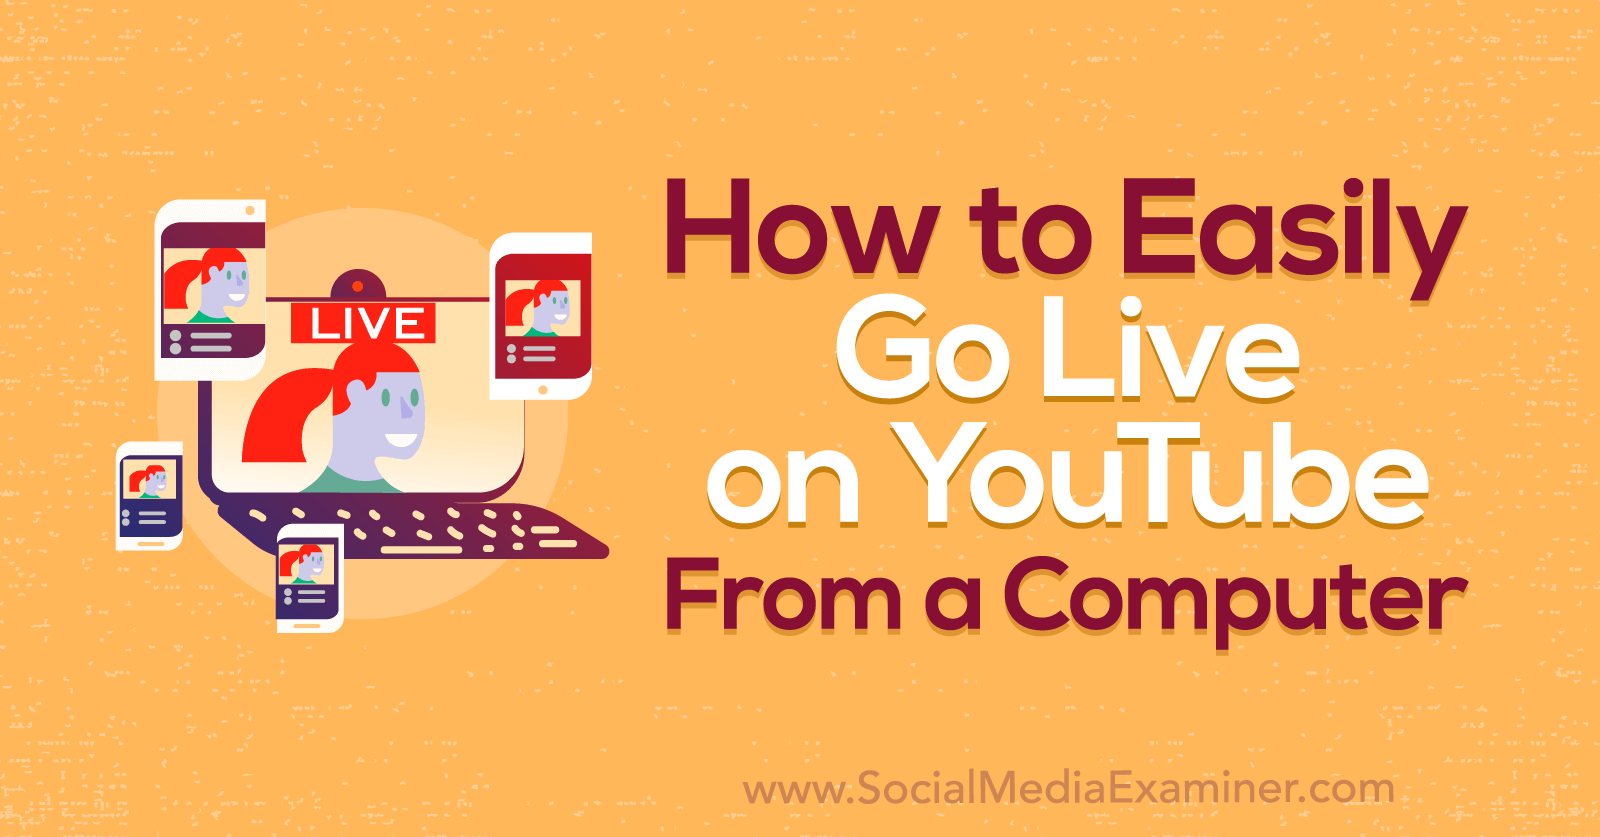 How To Easily Go Live On Youtube From A Computer Social Media Examiner